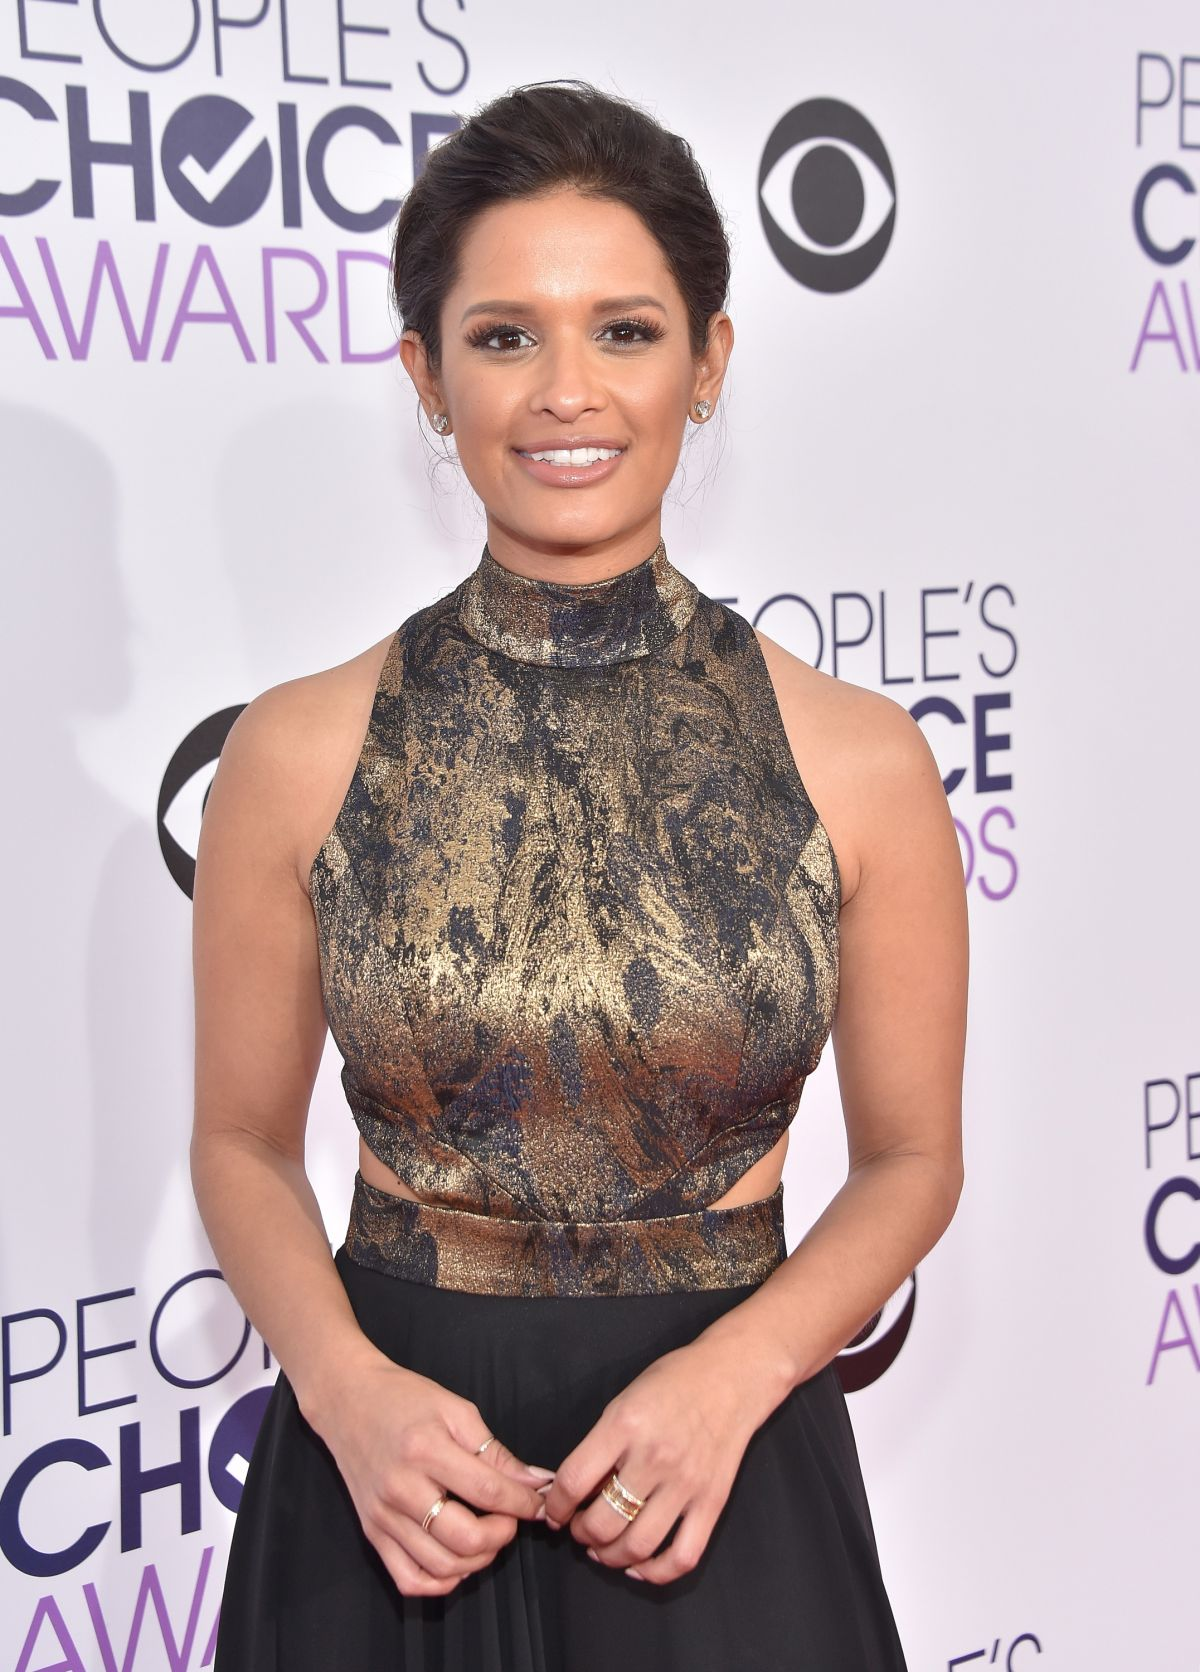 ROCSI DIAZ at 2016 People's Choice Awards in Los Angeles 01/06/2016